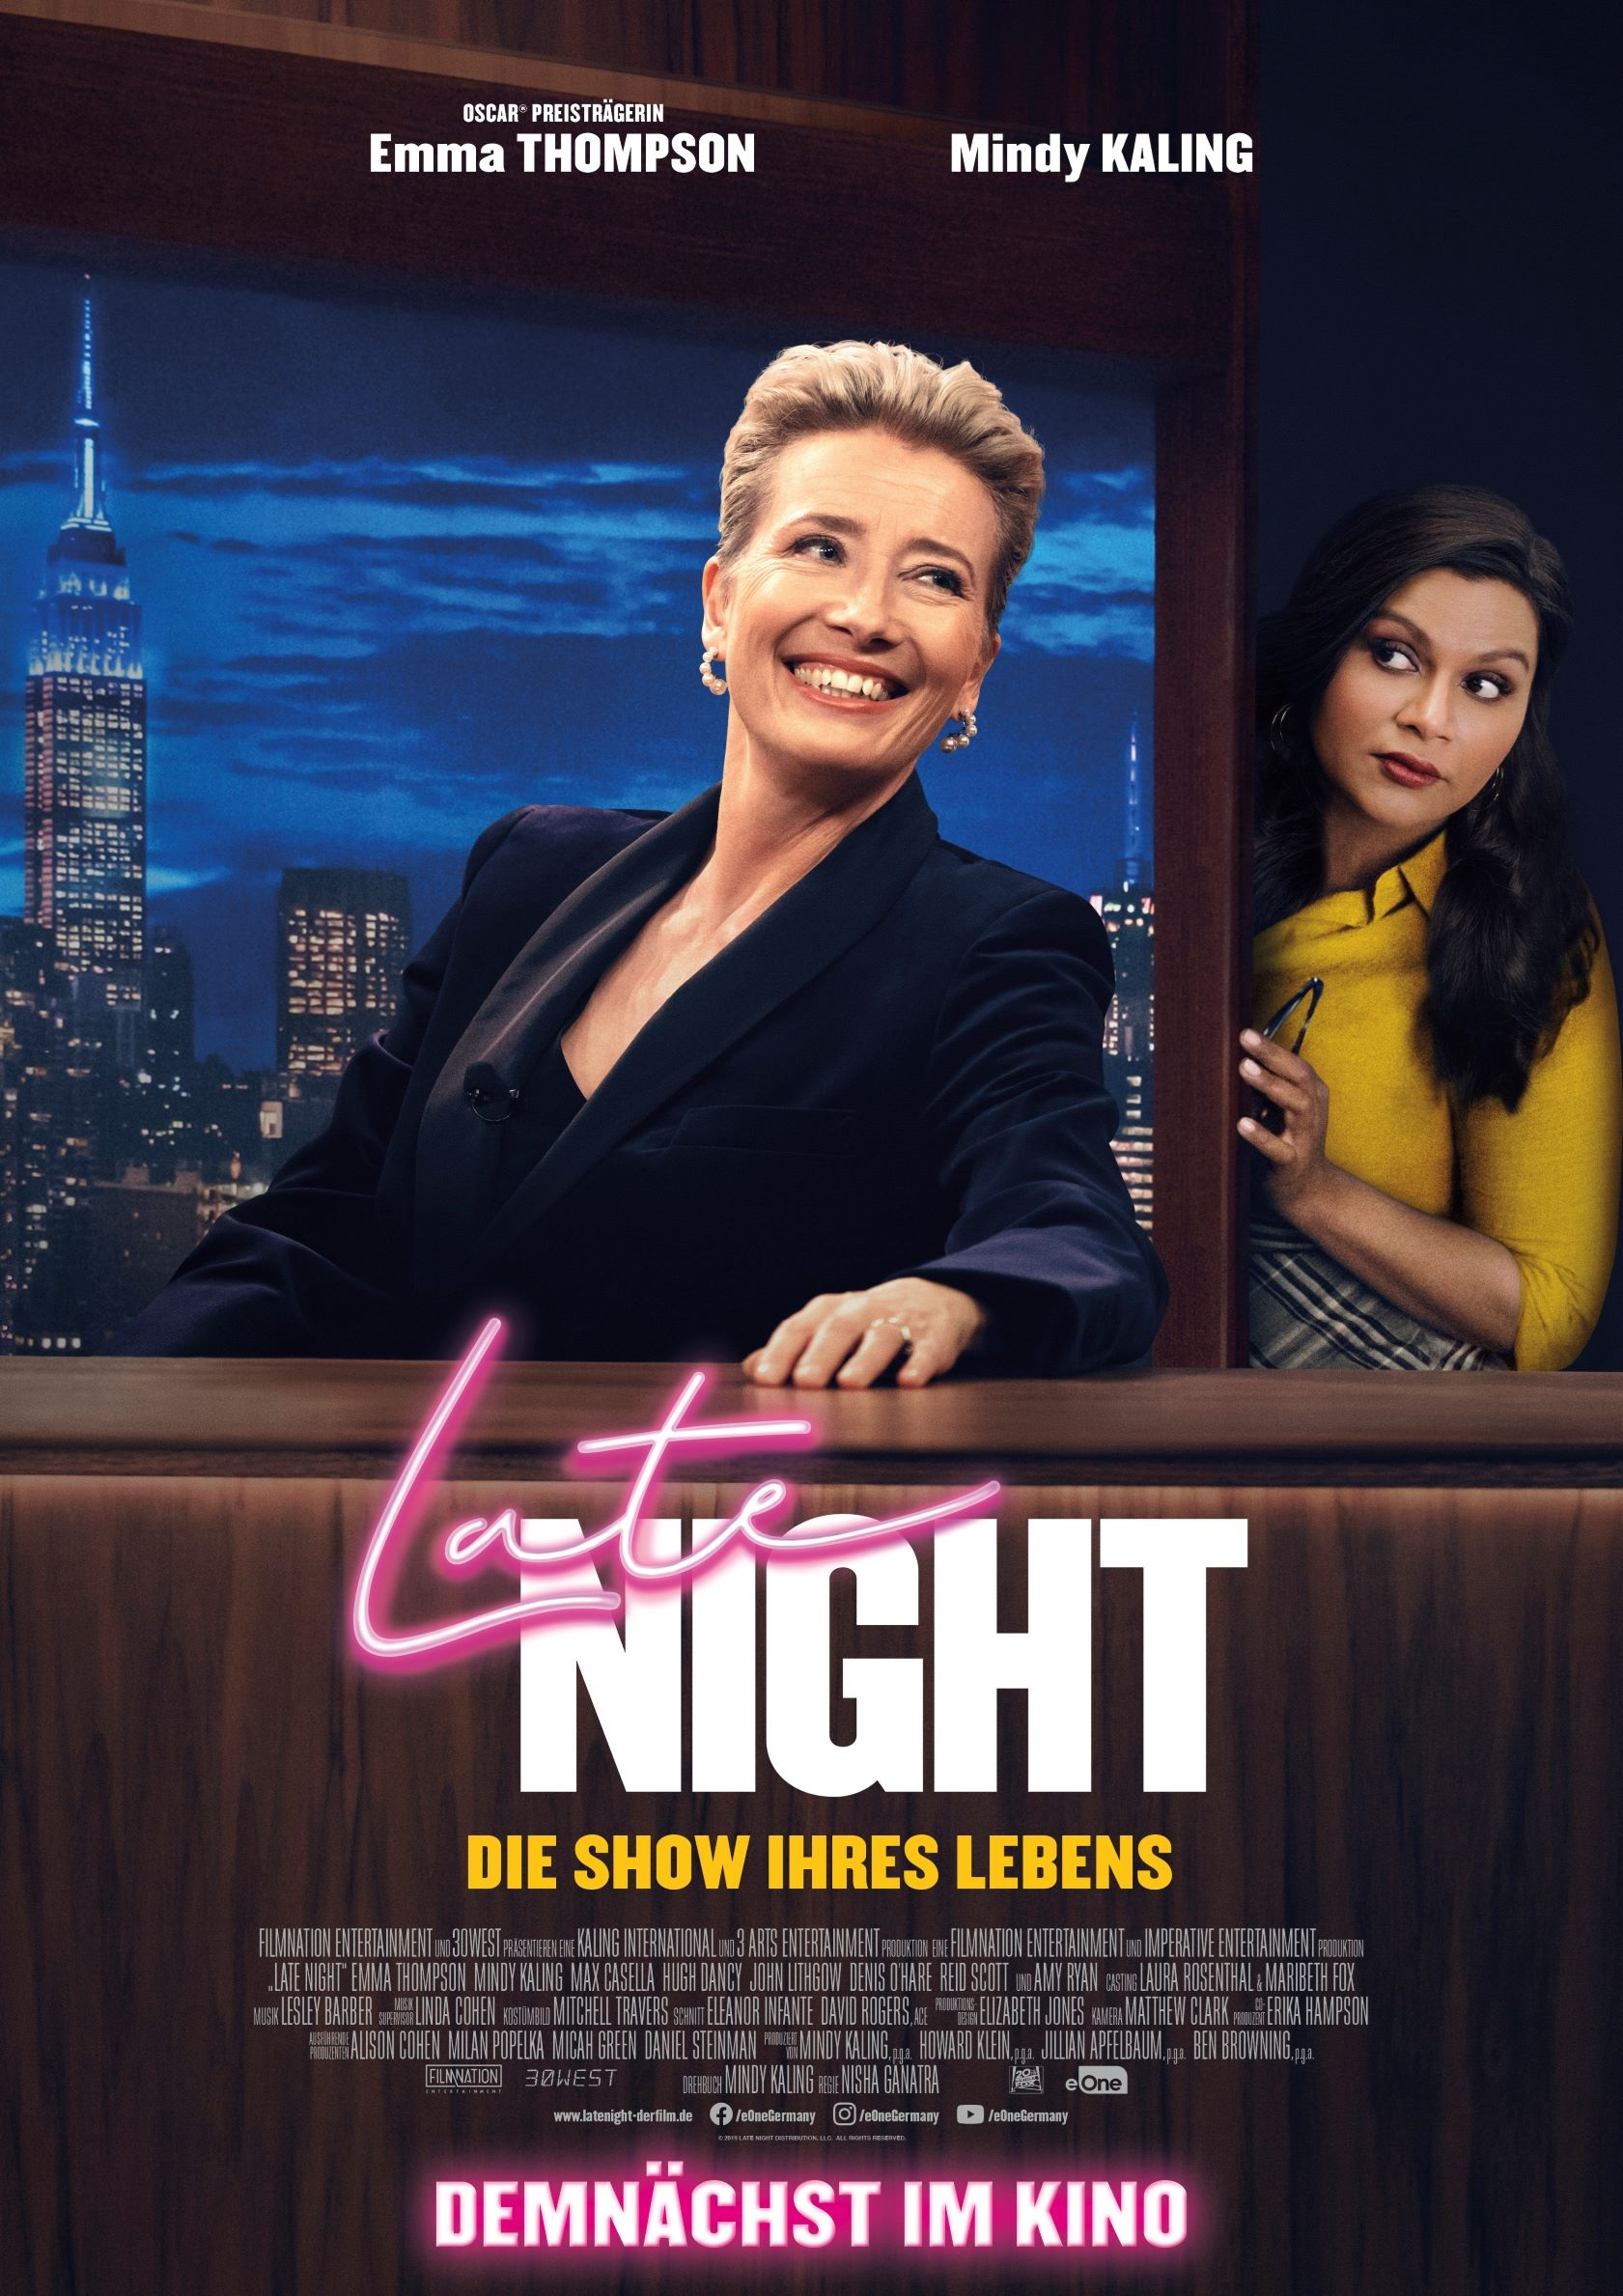 Late Night - Die Show ihres Lebens © 2019 eOne Germany